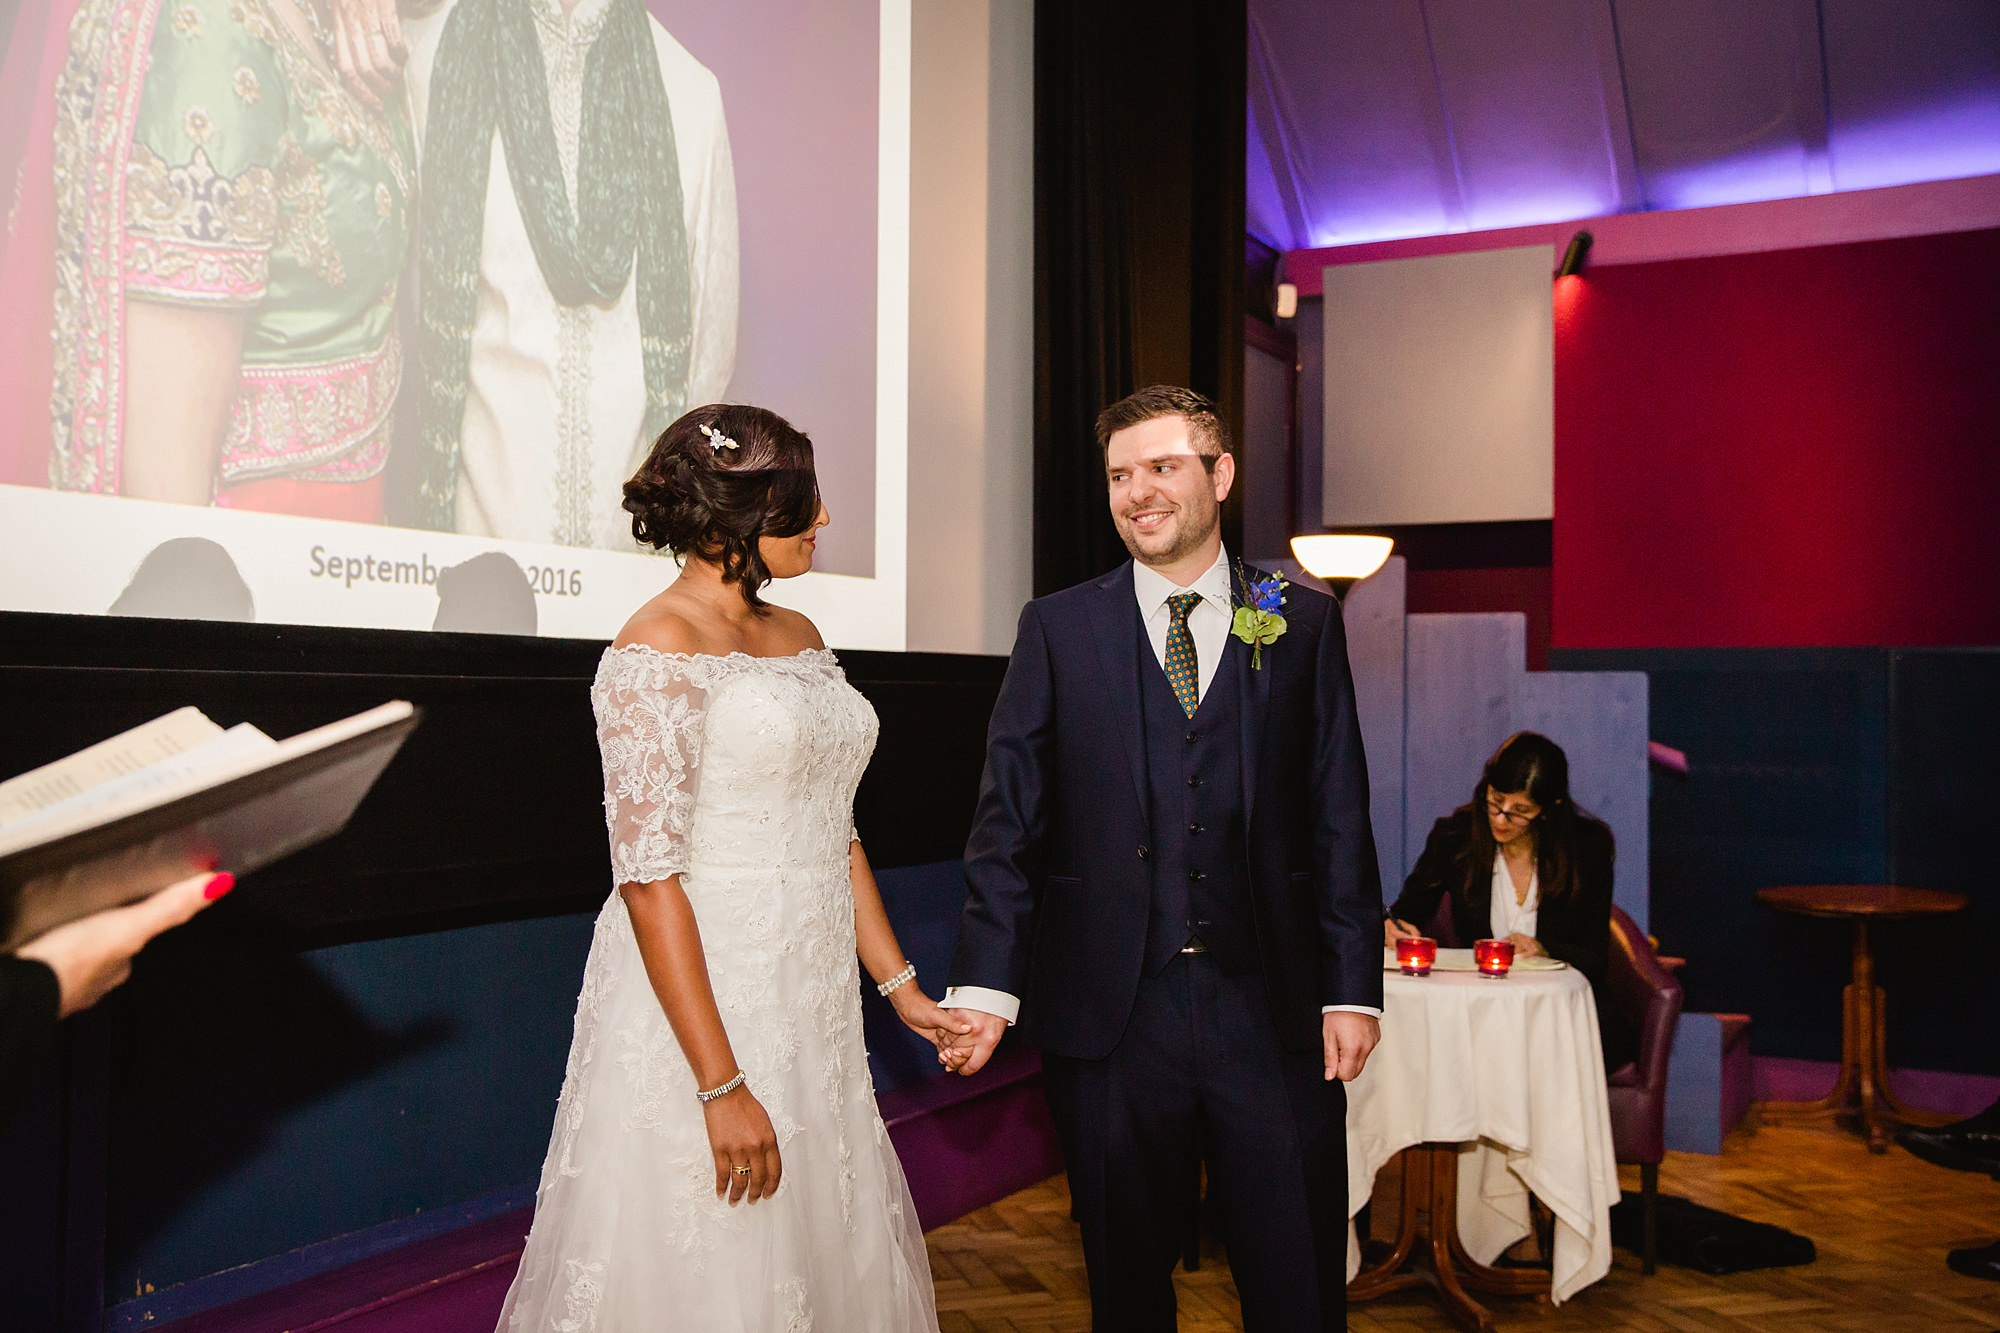 Paradise by way of Kensal Green wedding bride and groom during ceremony